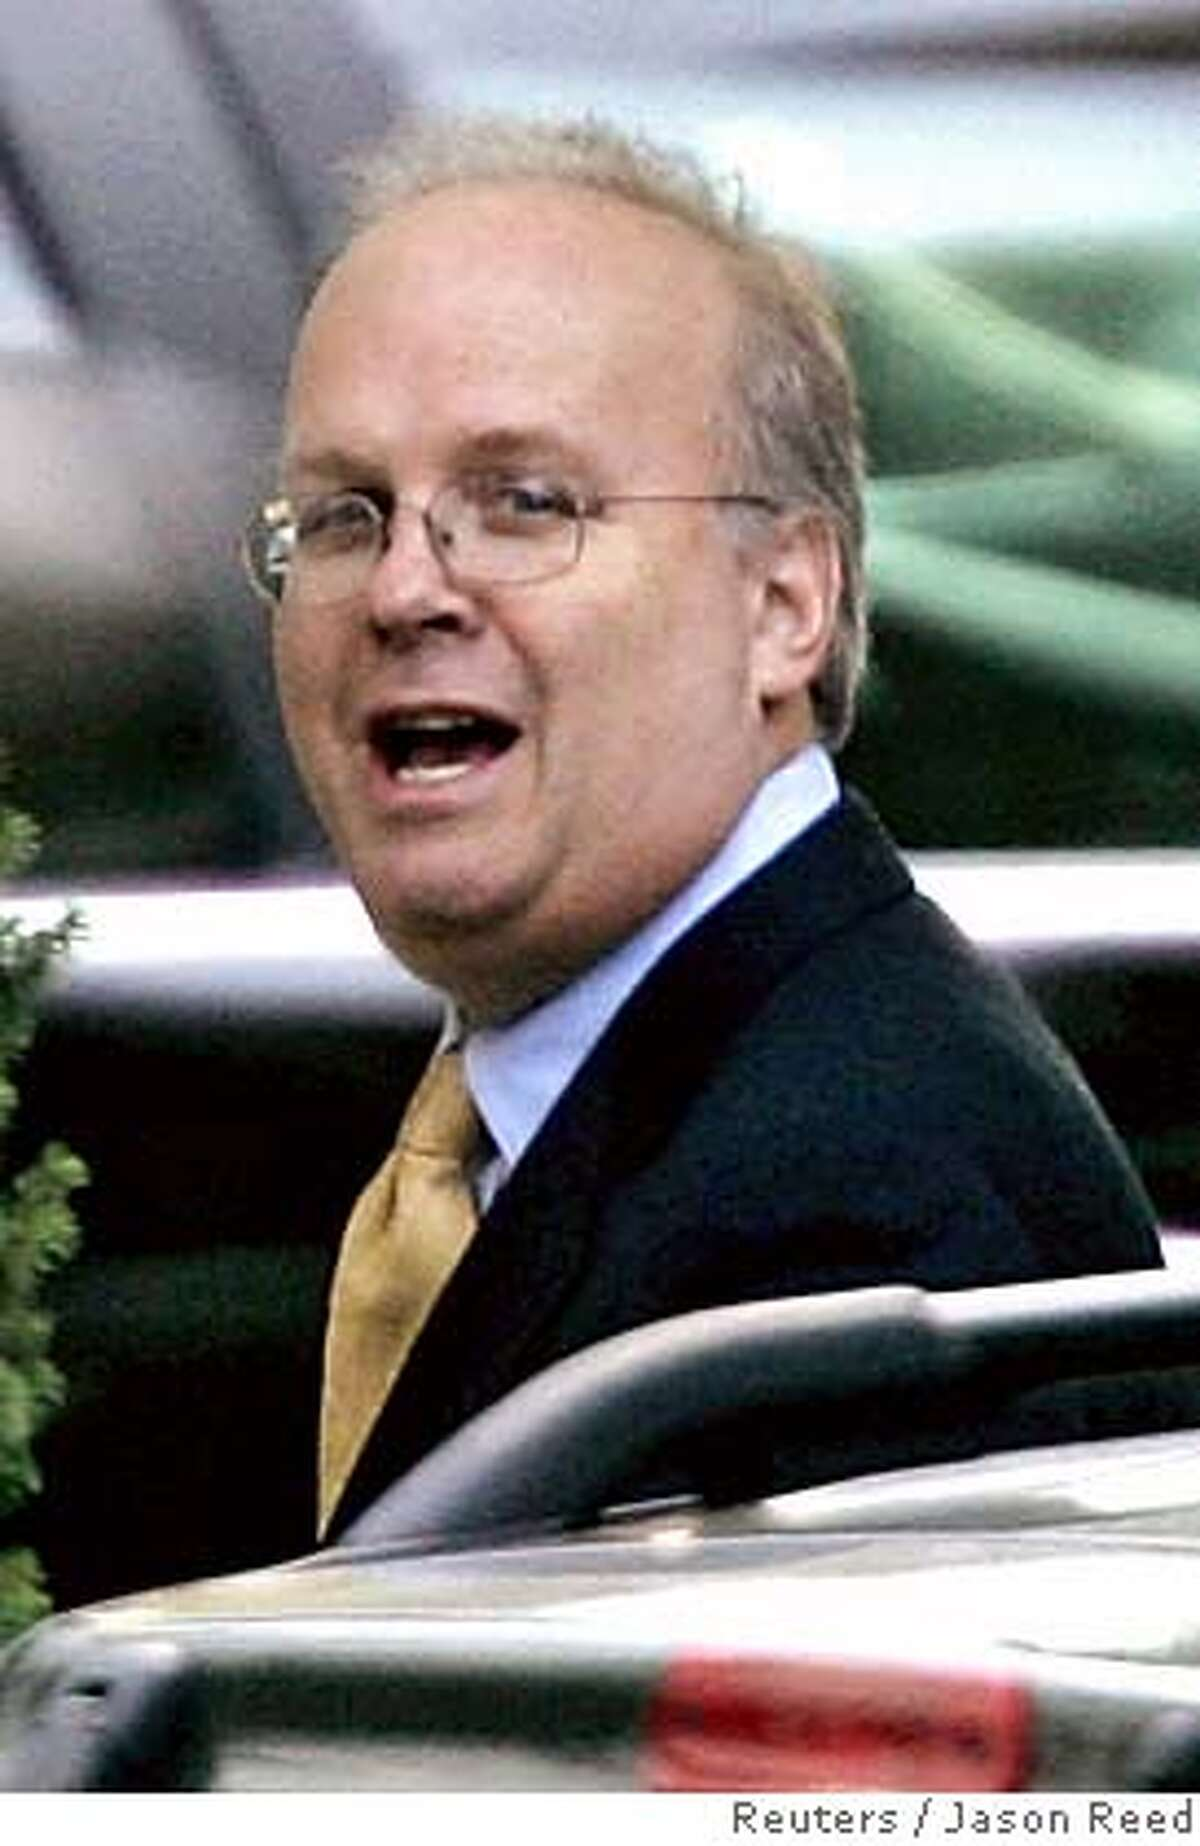 Deputy White House Chief of Staff Karl Rove walks into the West Wing of the White House from the Old Executive Office building in Washington October 27, 2005. Two key White House aides, Rove and Vice President Dick Cheney's chief of staff, Lewis